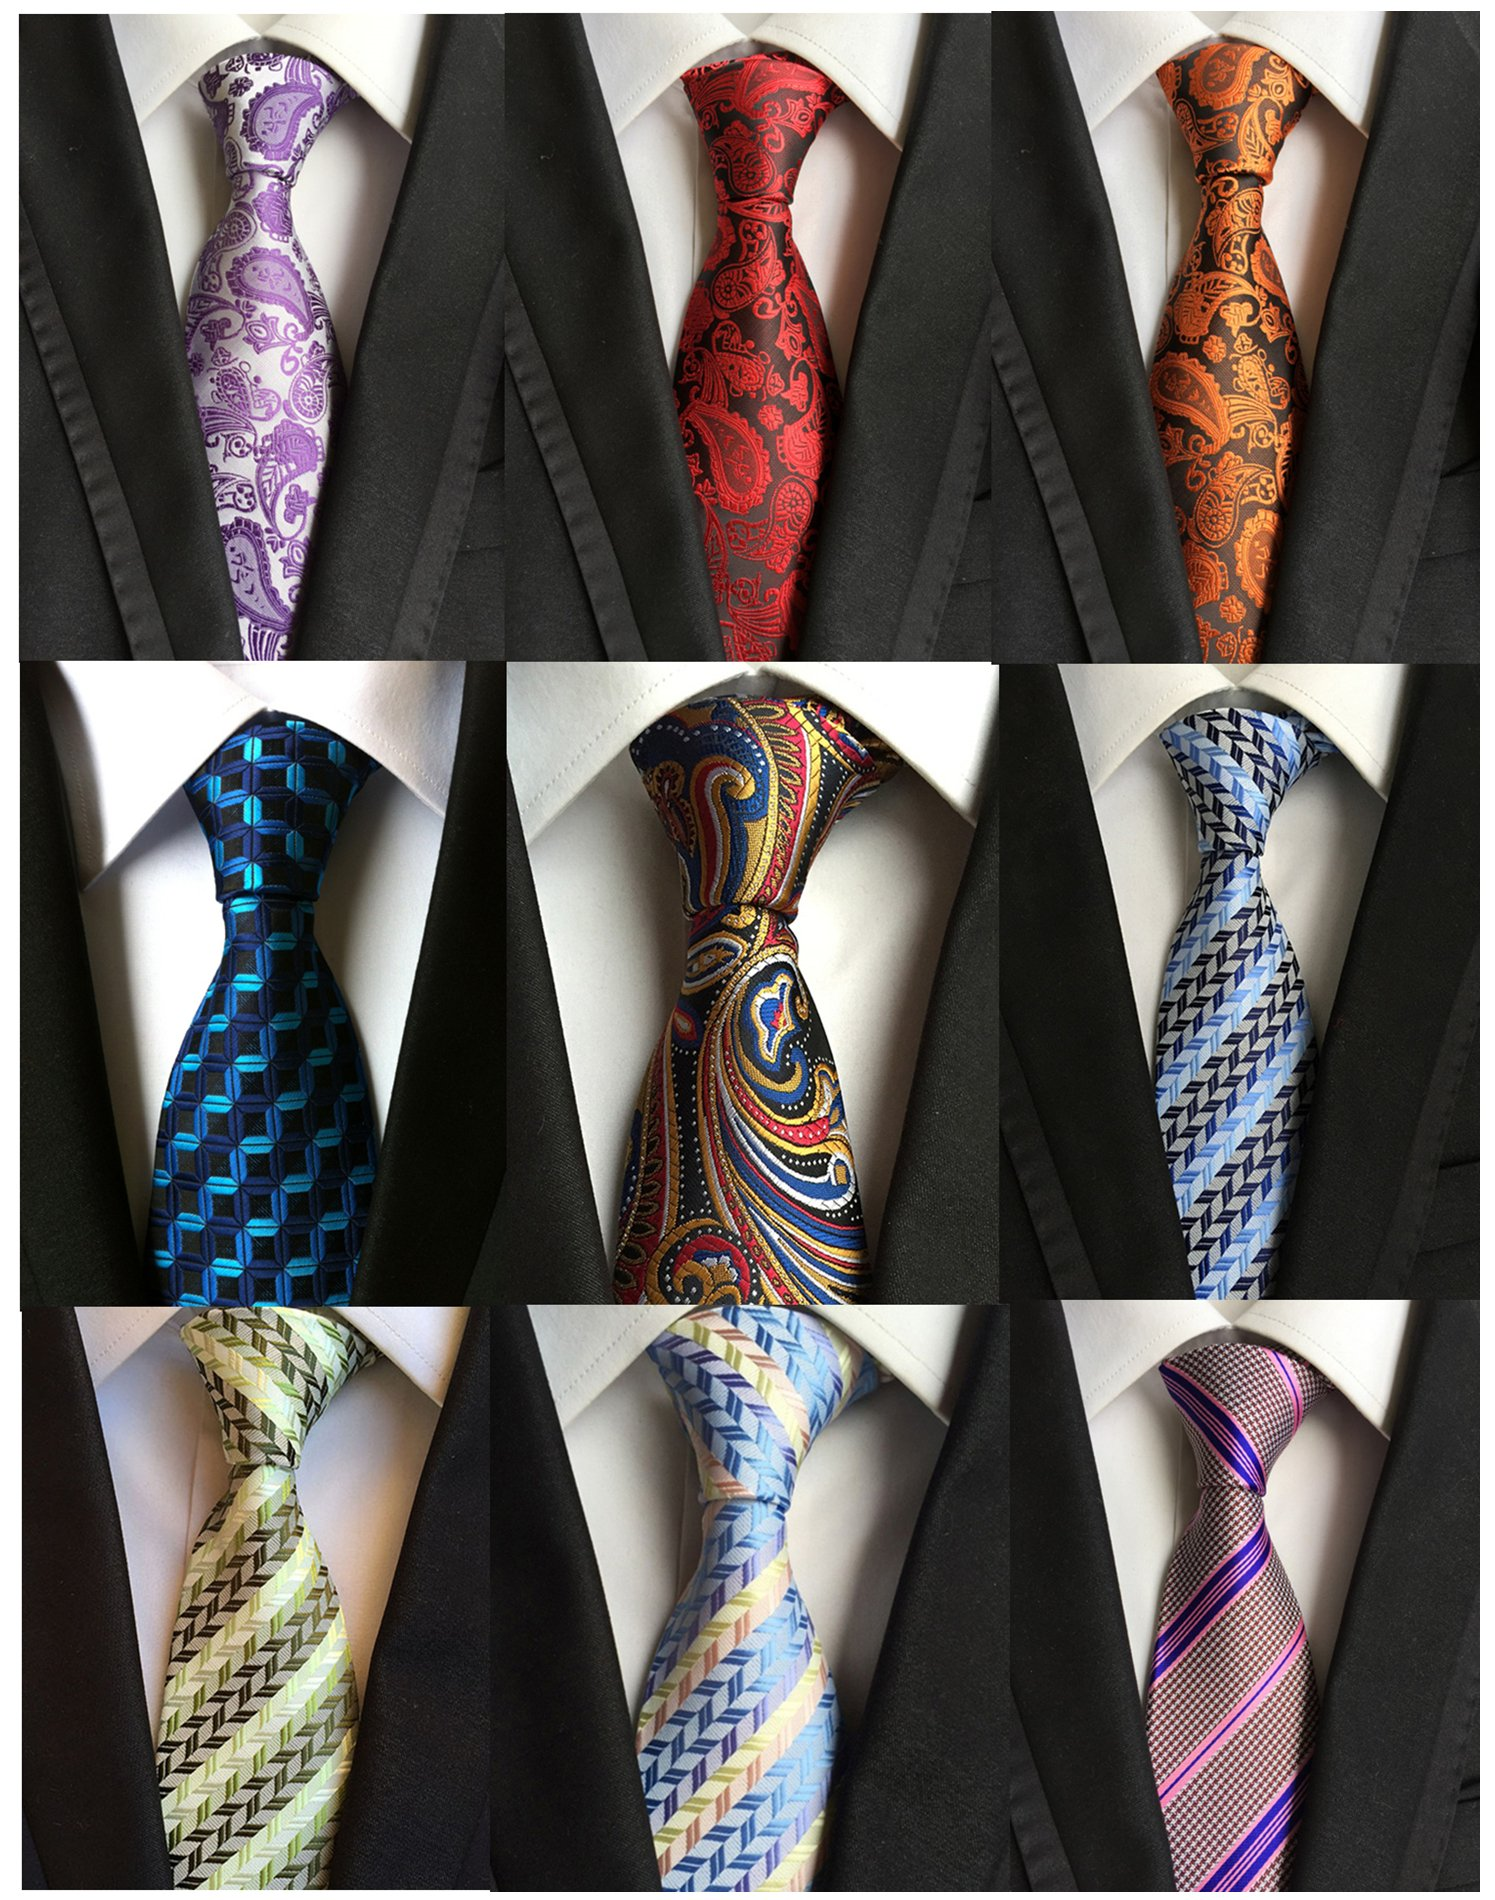 Welen Lot 9 PCS Classic Men's Tie Necktie Woven JACQUARD Neck Ties (Style 06)